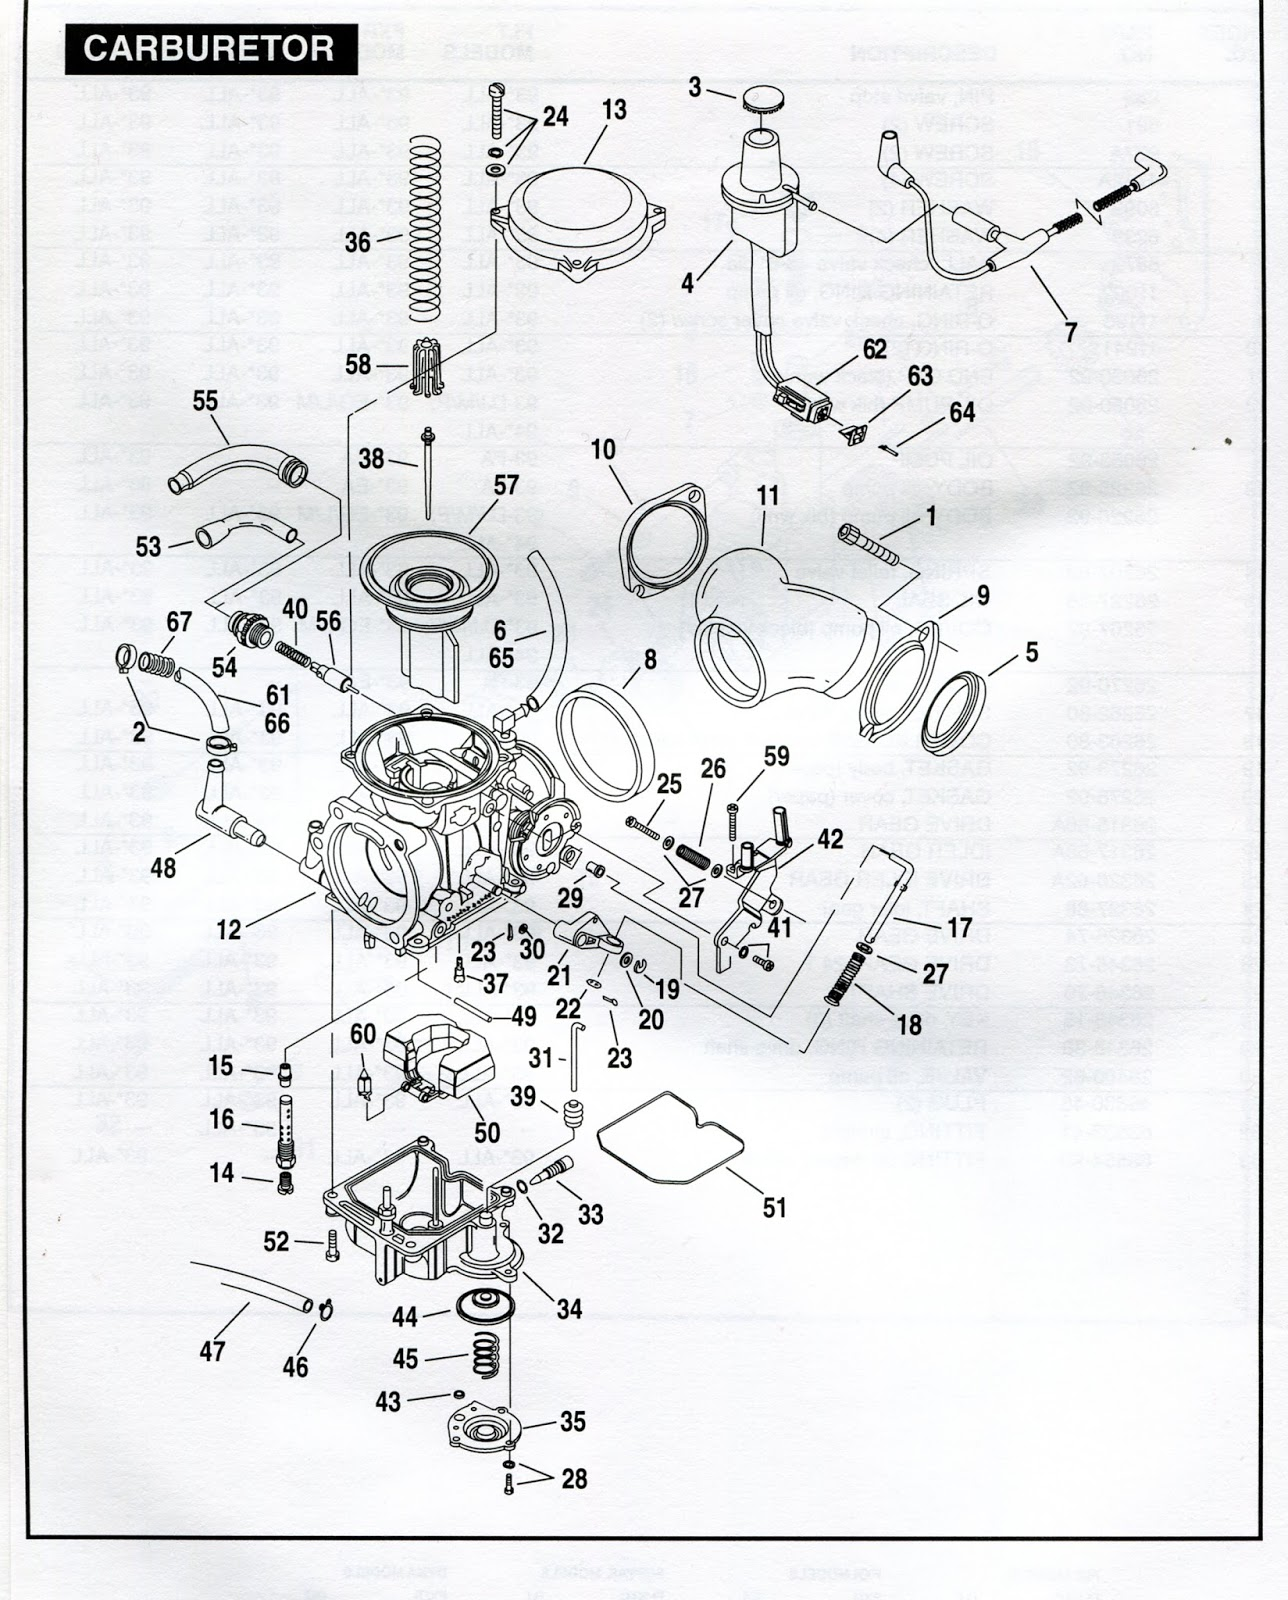 hight resolution of harley davidson carburetor diagram wiring diagram week 94 harley carburetor diagram